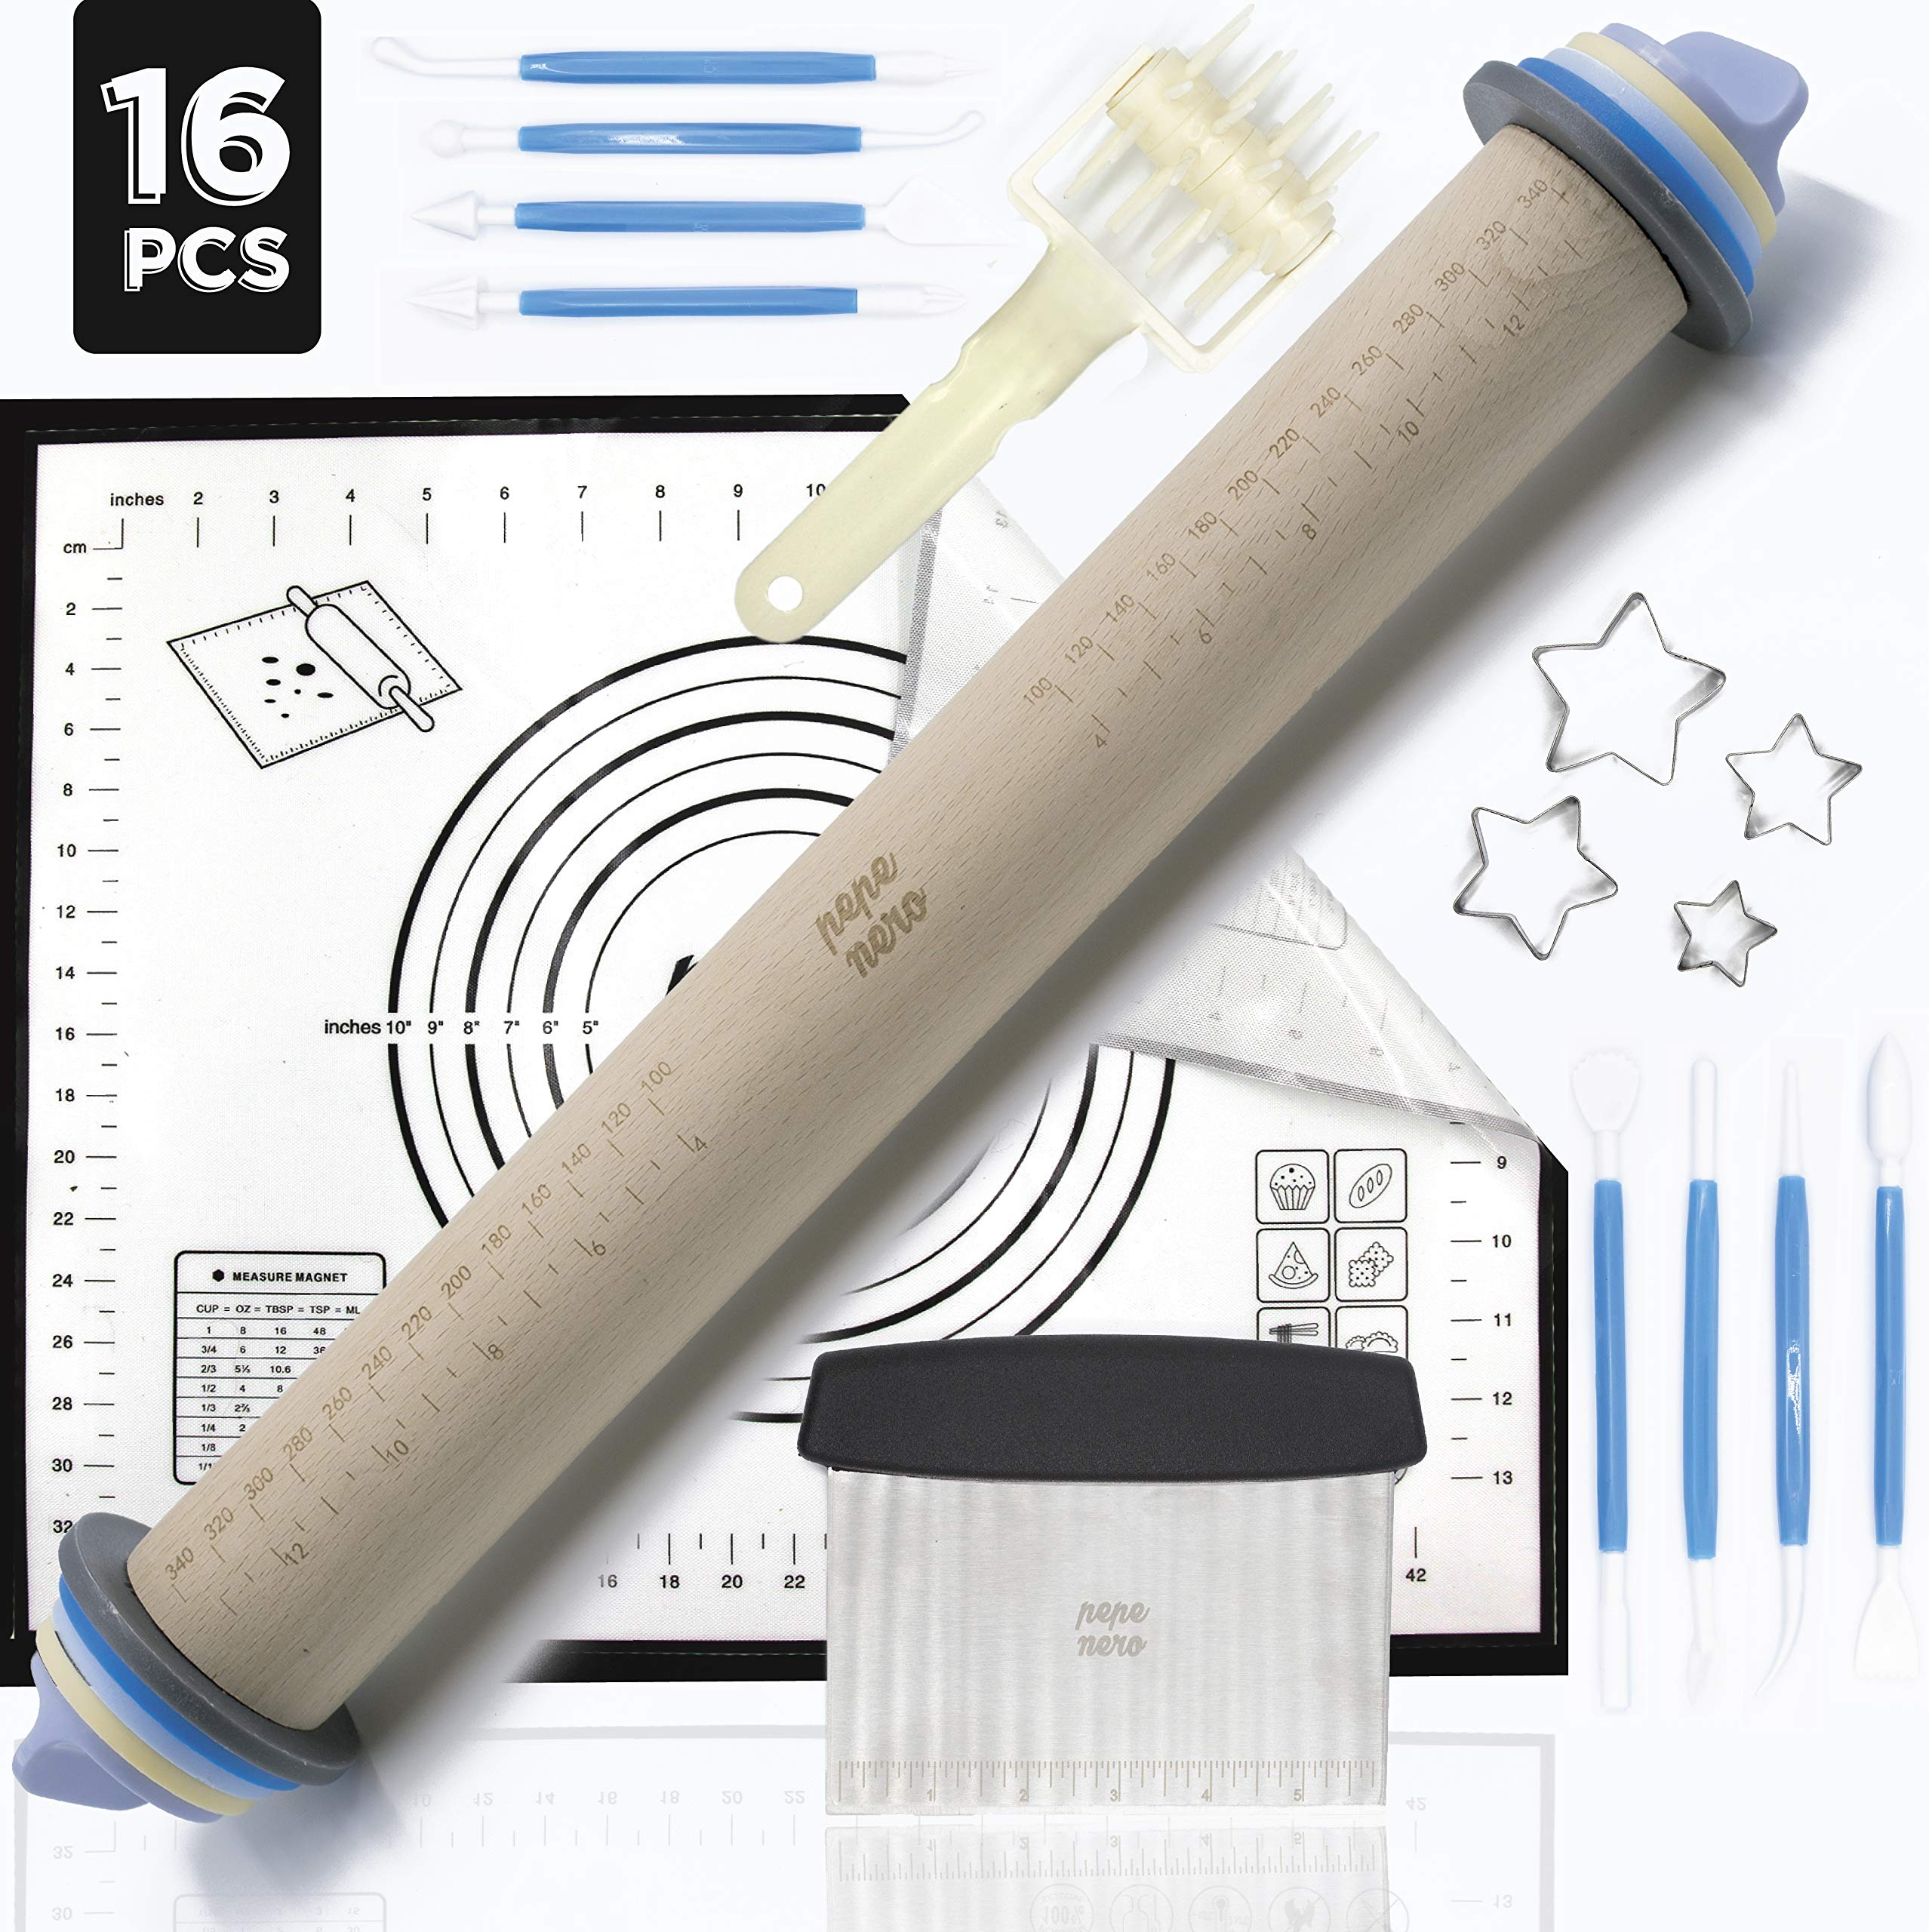 Rolling Pin - Adjustable Rolling Pin - Silicone Baking Mats For Sugar Cookies - Pastry Mat - Pastry Cutter- Pasta Roller - Dough Roller - Pizza Roller - Baking Supplies - Fondant Tools - Dough Cutter by Pepe Nero